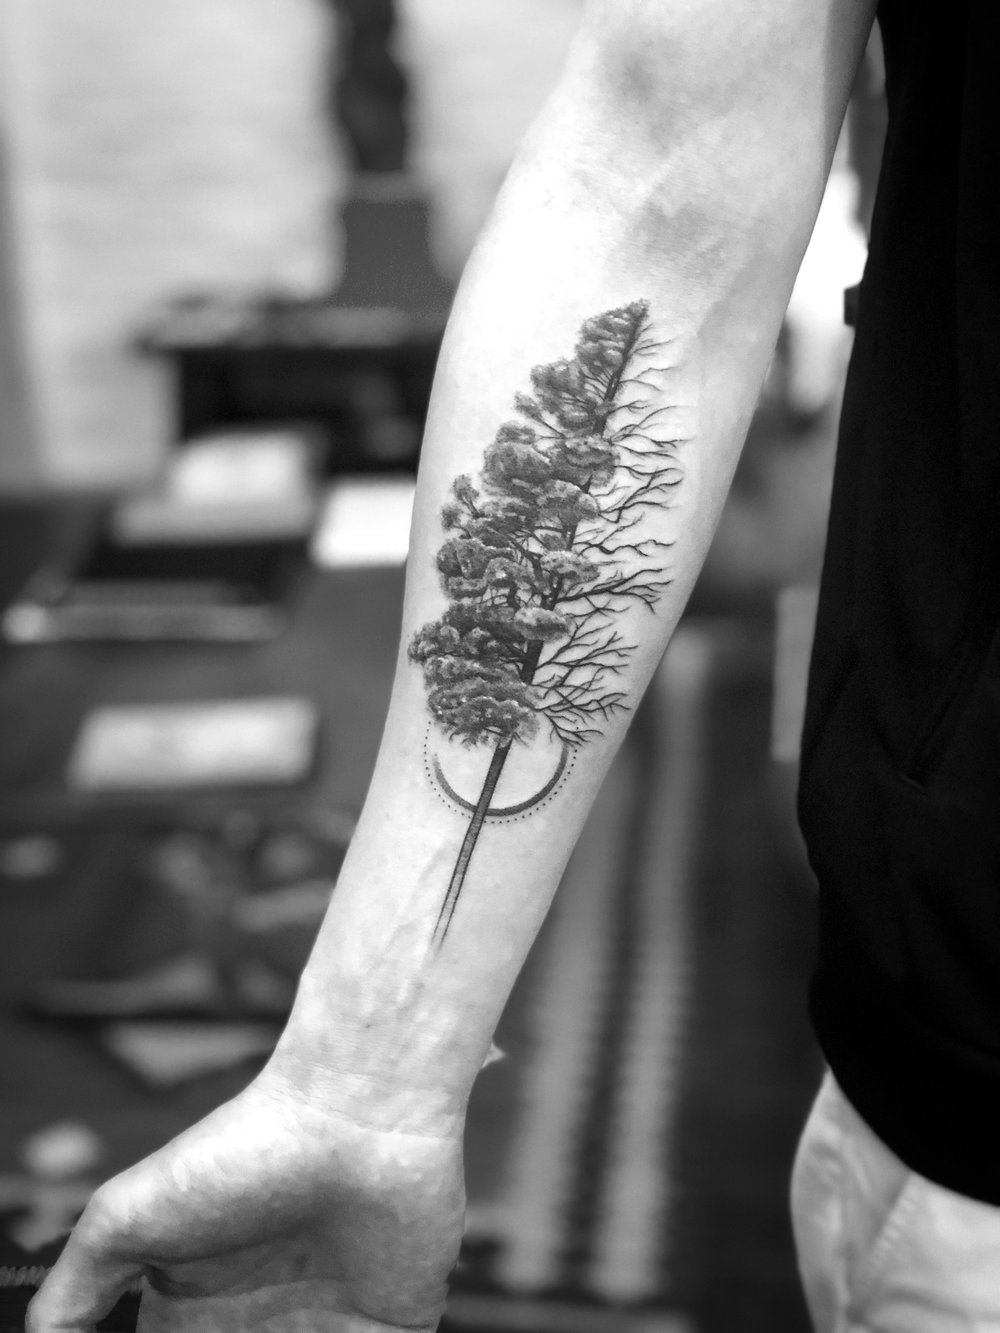 2018-fridays-tattoo-hong-kong-felix-tree-illustration.jpg